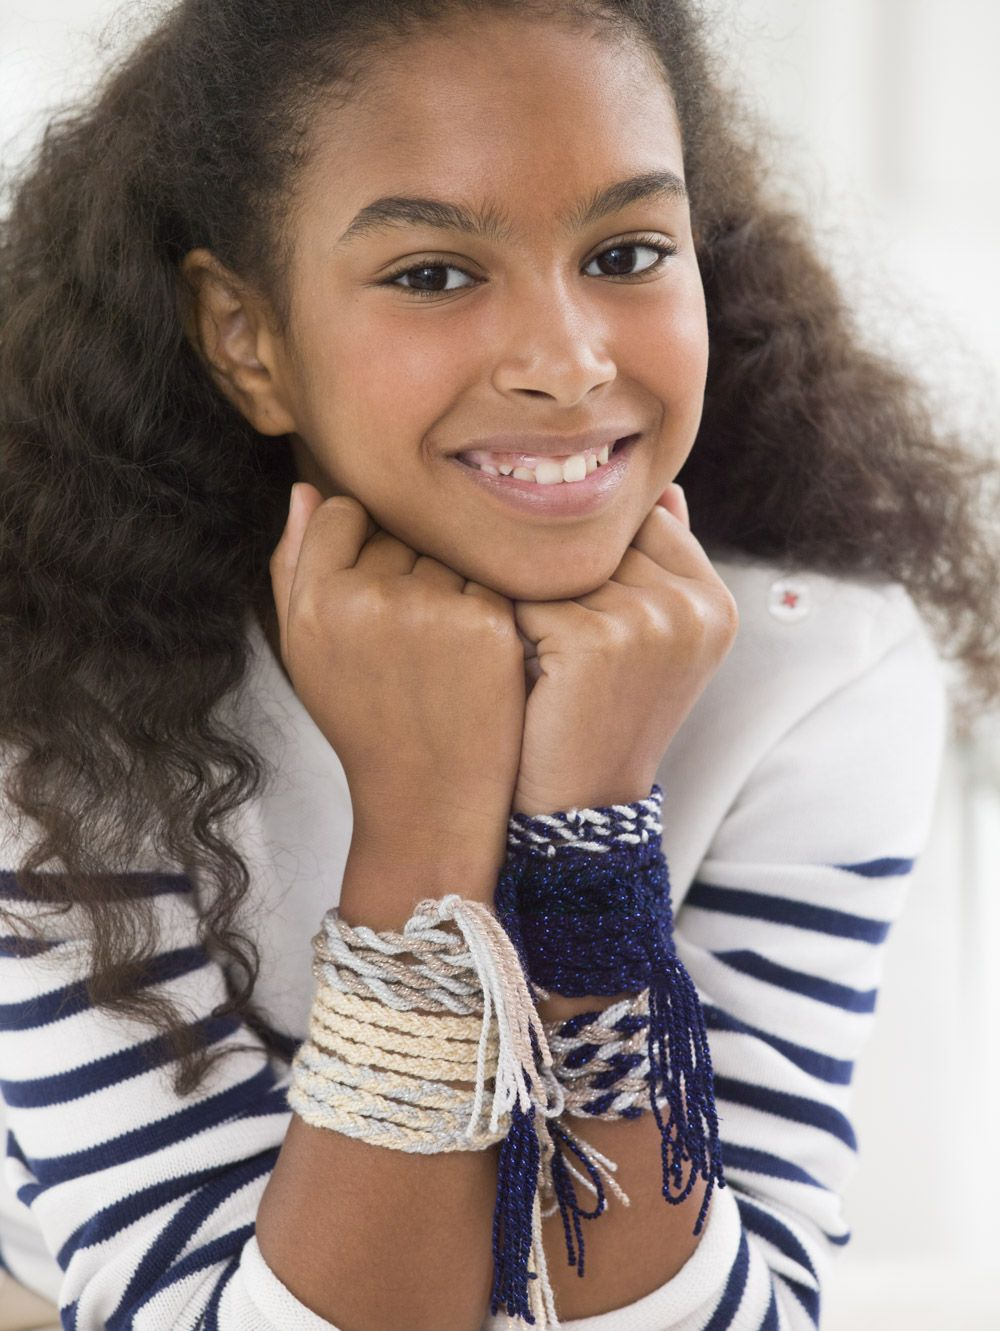 Make these free spirit bracelets with kids for a fun afternoon project! Free pattern calls for Vanna's Glamour (pictured in platinum, topaz, sapphire, and moonstone), but you can use leftover skeins and make this a stas-hbuster project too!